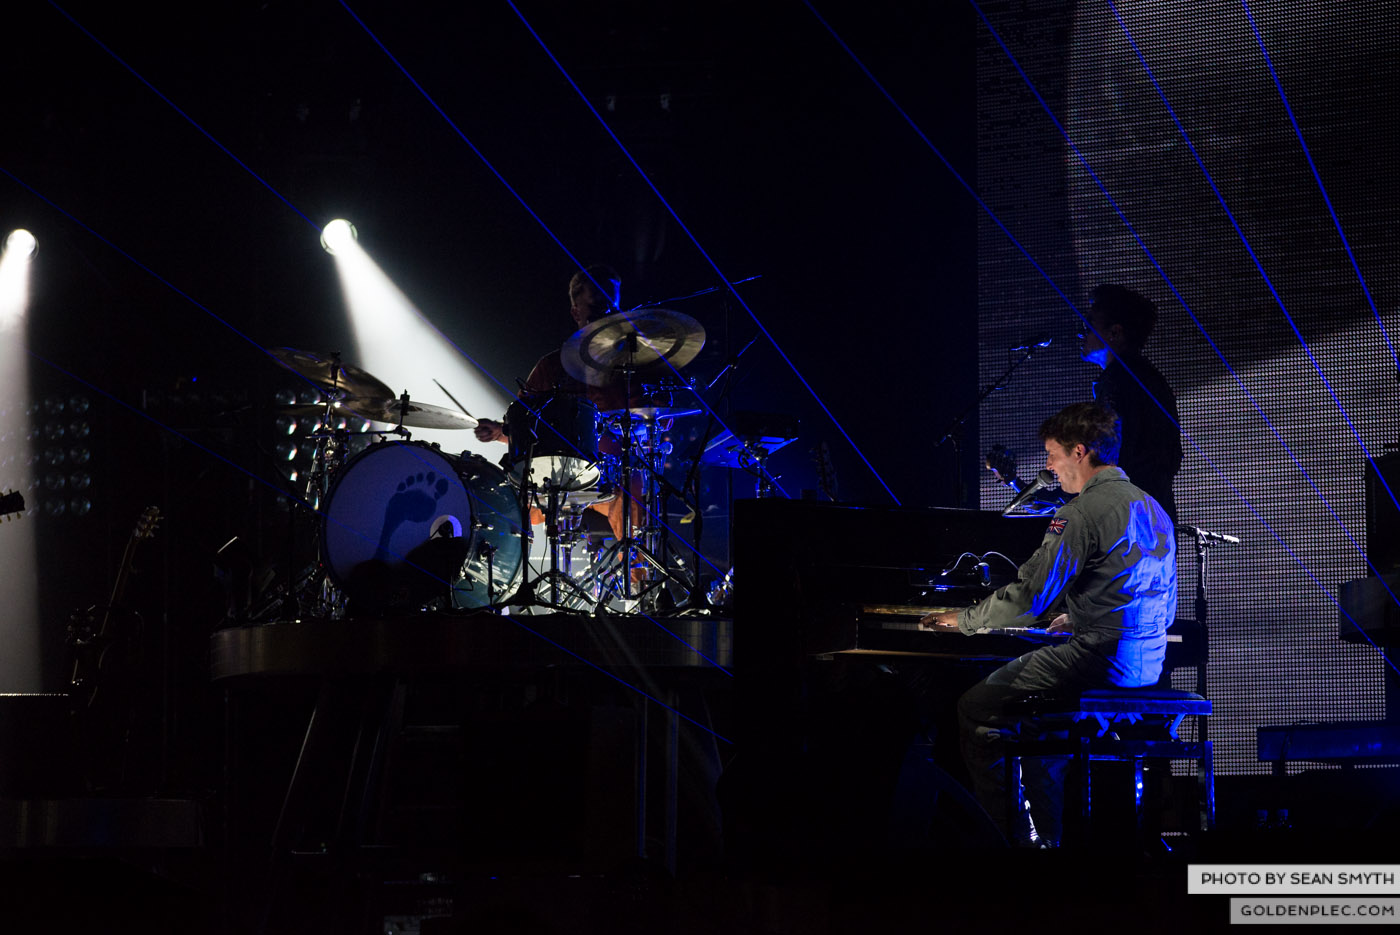 james-blunt-at-3arena-by-sean-smyth-20-11-14-2-of-29